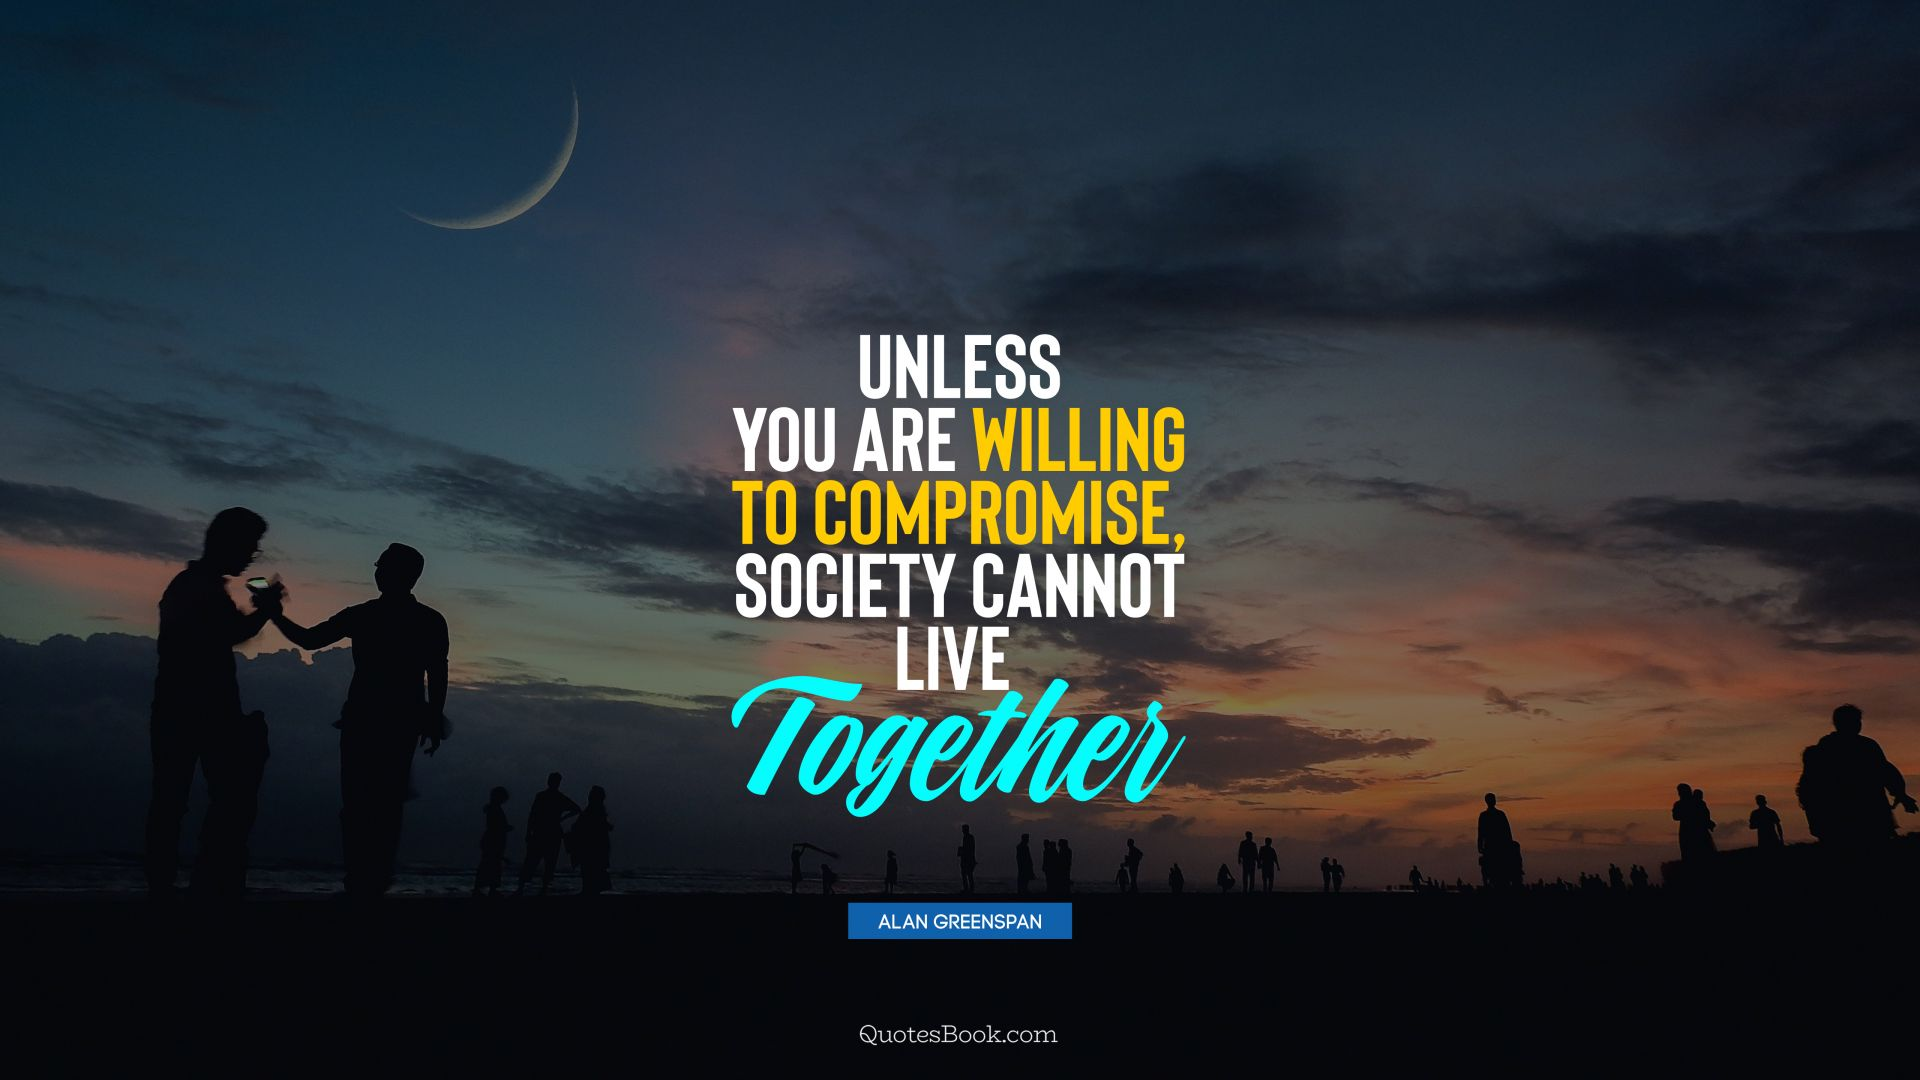 Unless you are willing to compromise, society cannot live together. - Quote by Alan Greenspan